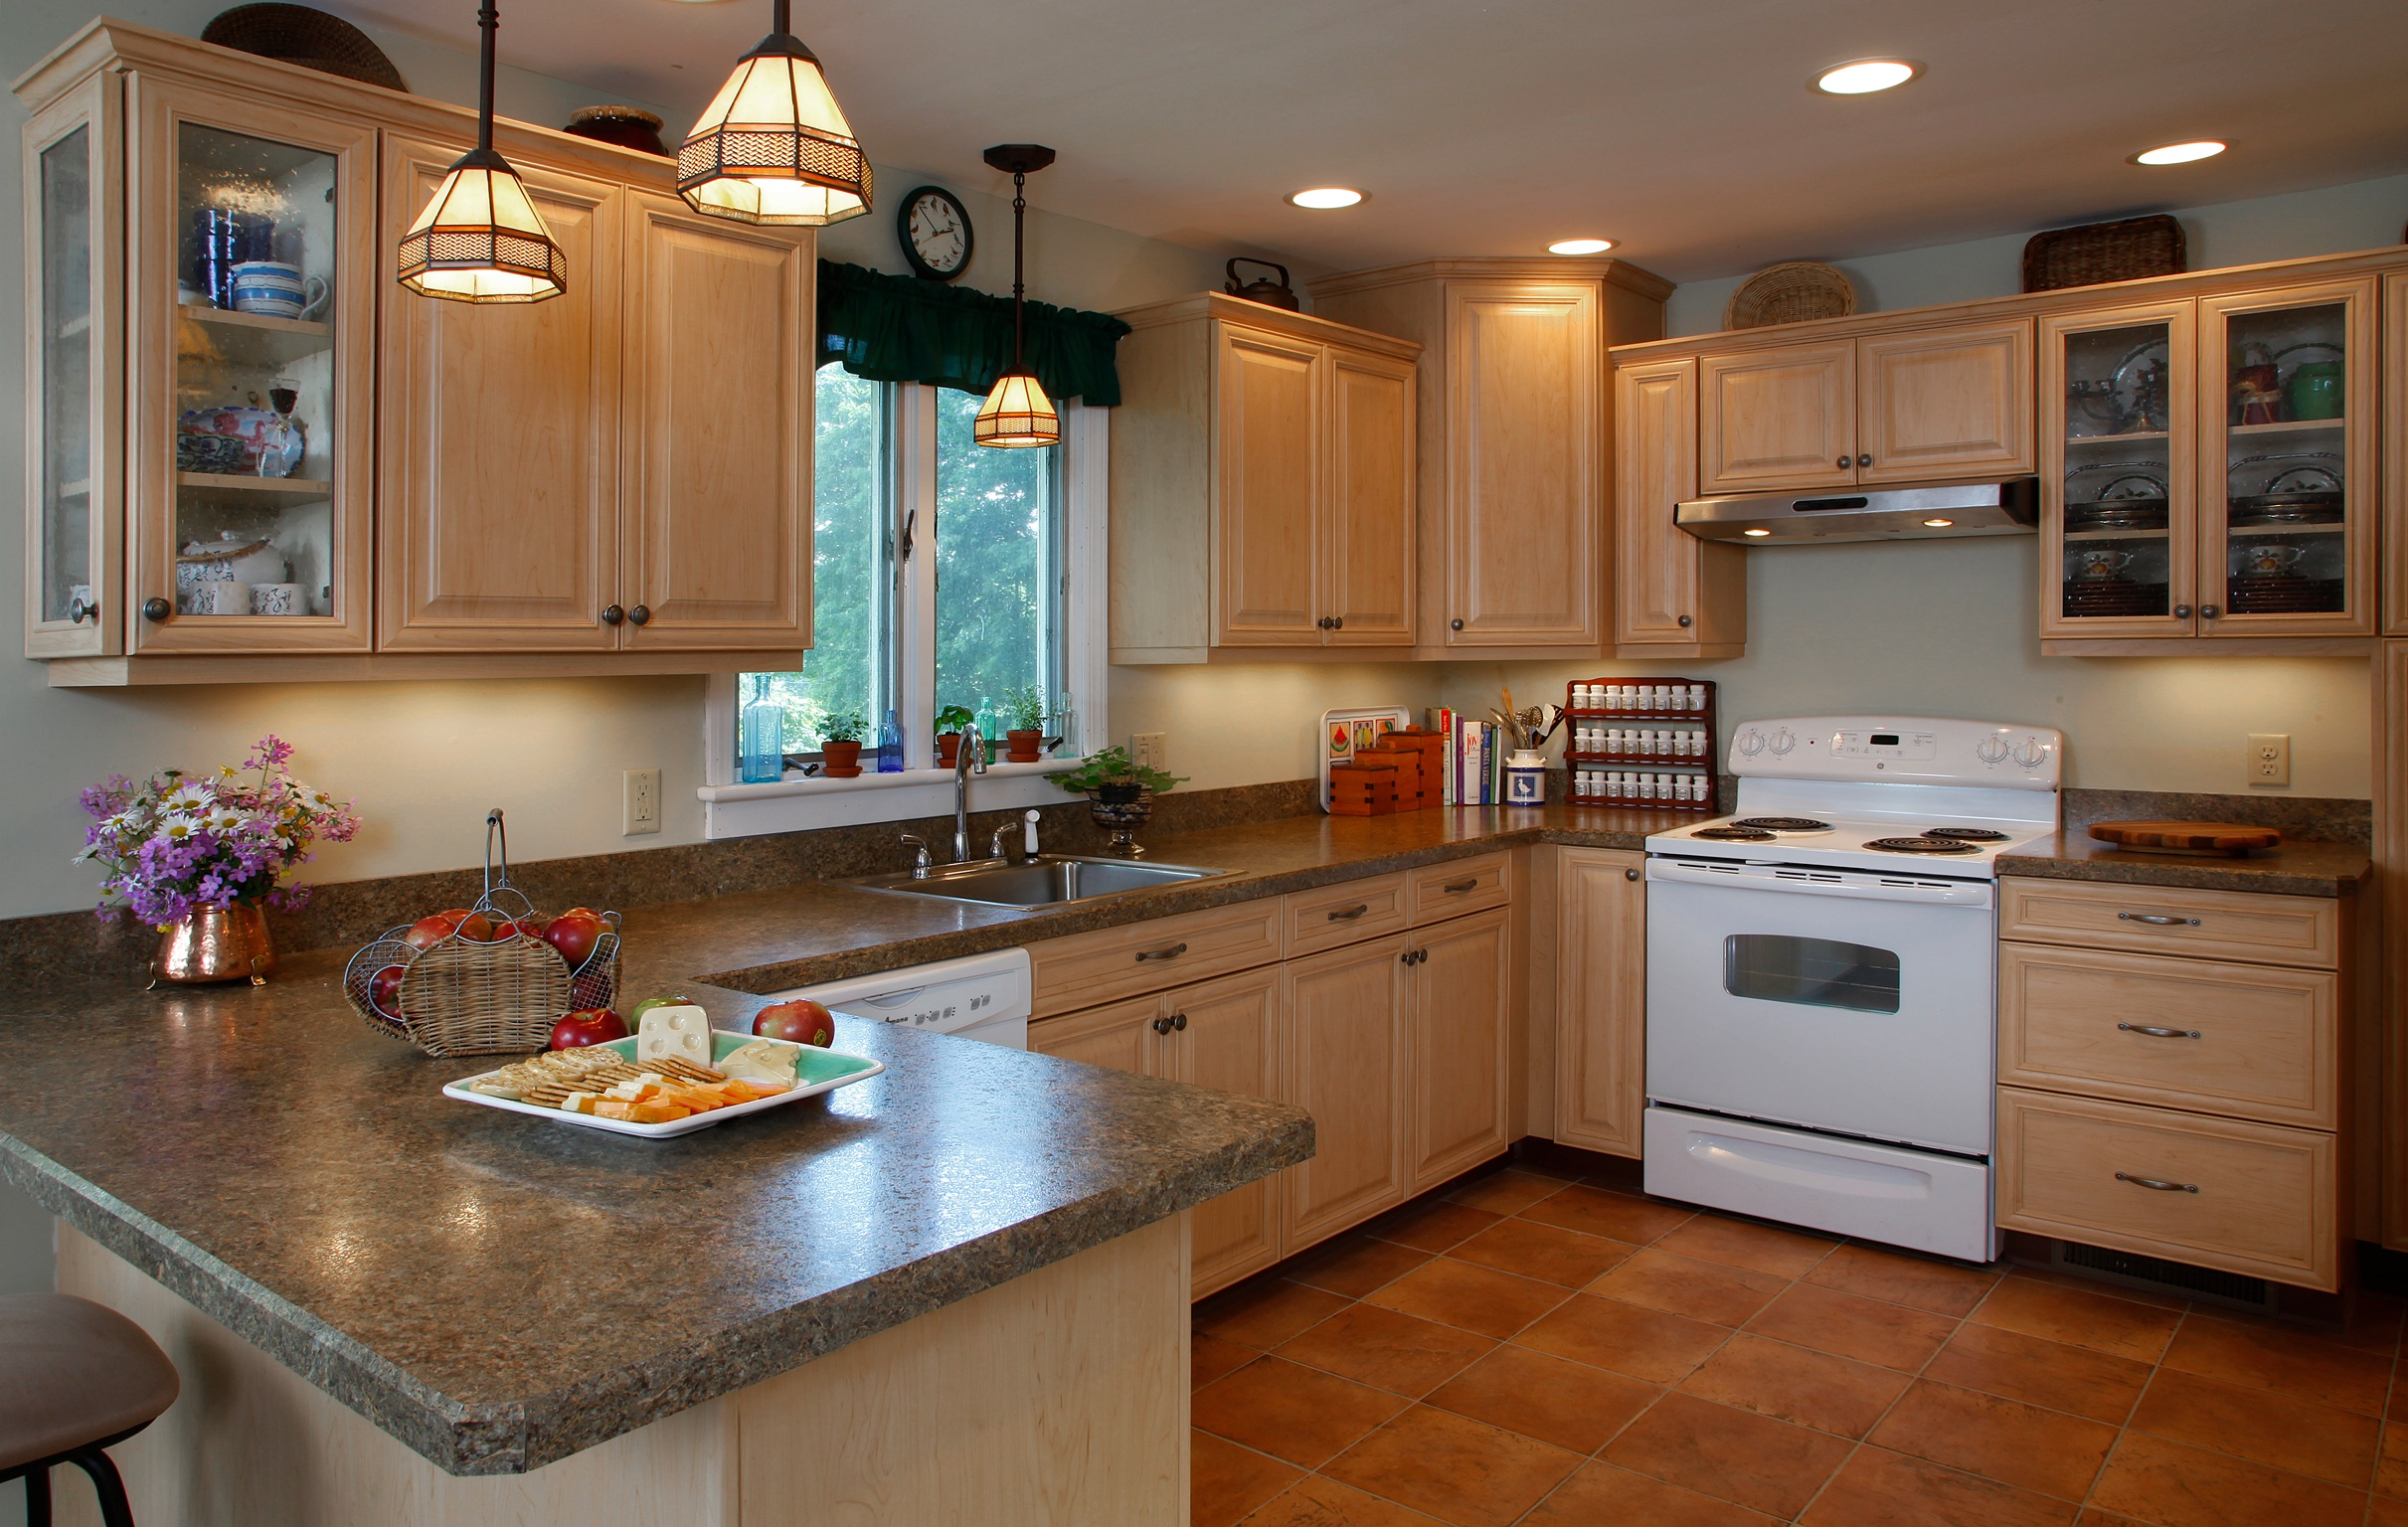 Kitchen Backsplash With Granite Countertops the pros and cons of the 4-inch backsplash